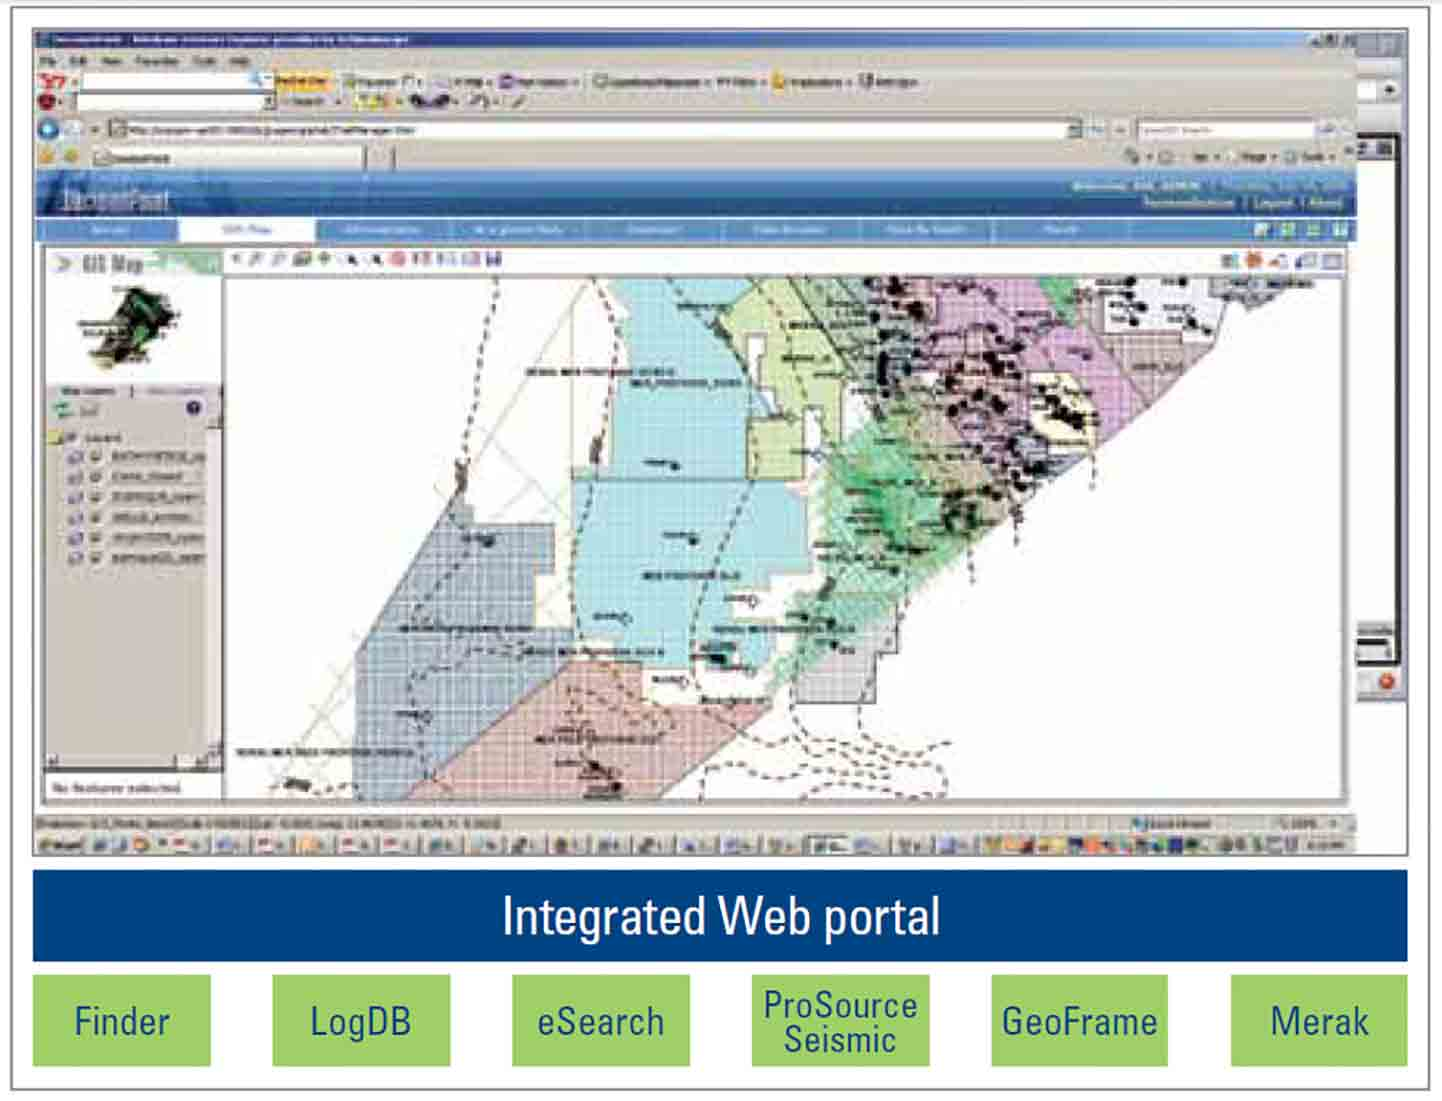 Snpc Integrates Seismic And Well Data Sources For Fast Secure Access Schlumberger